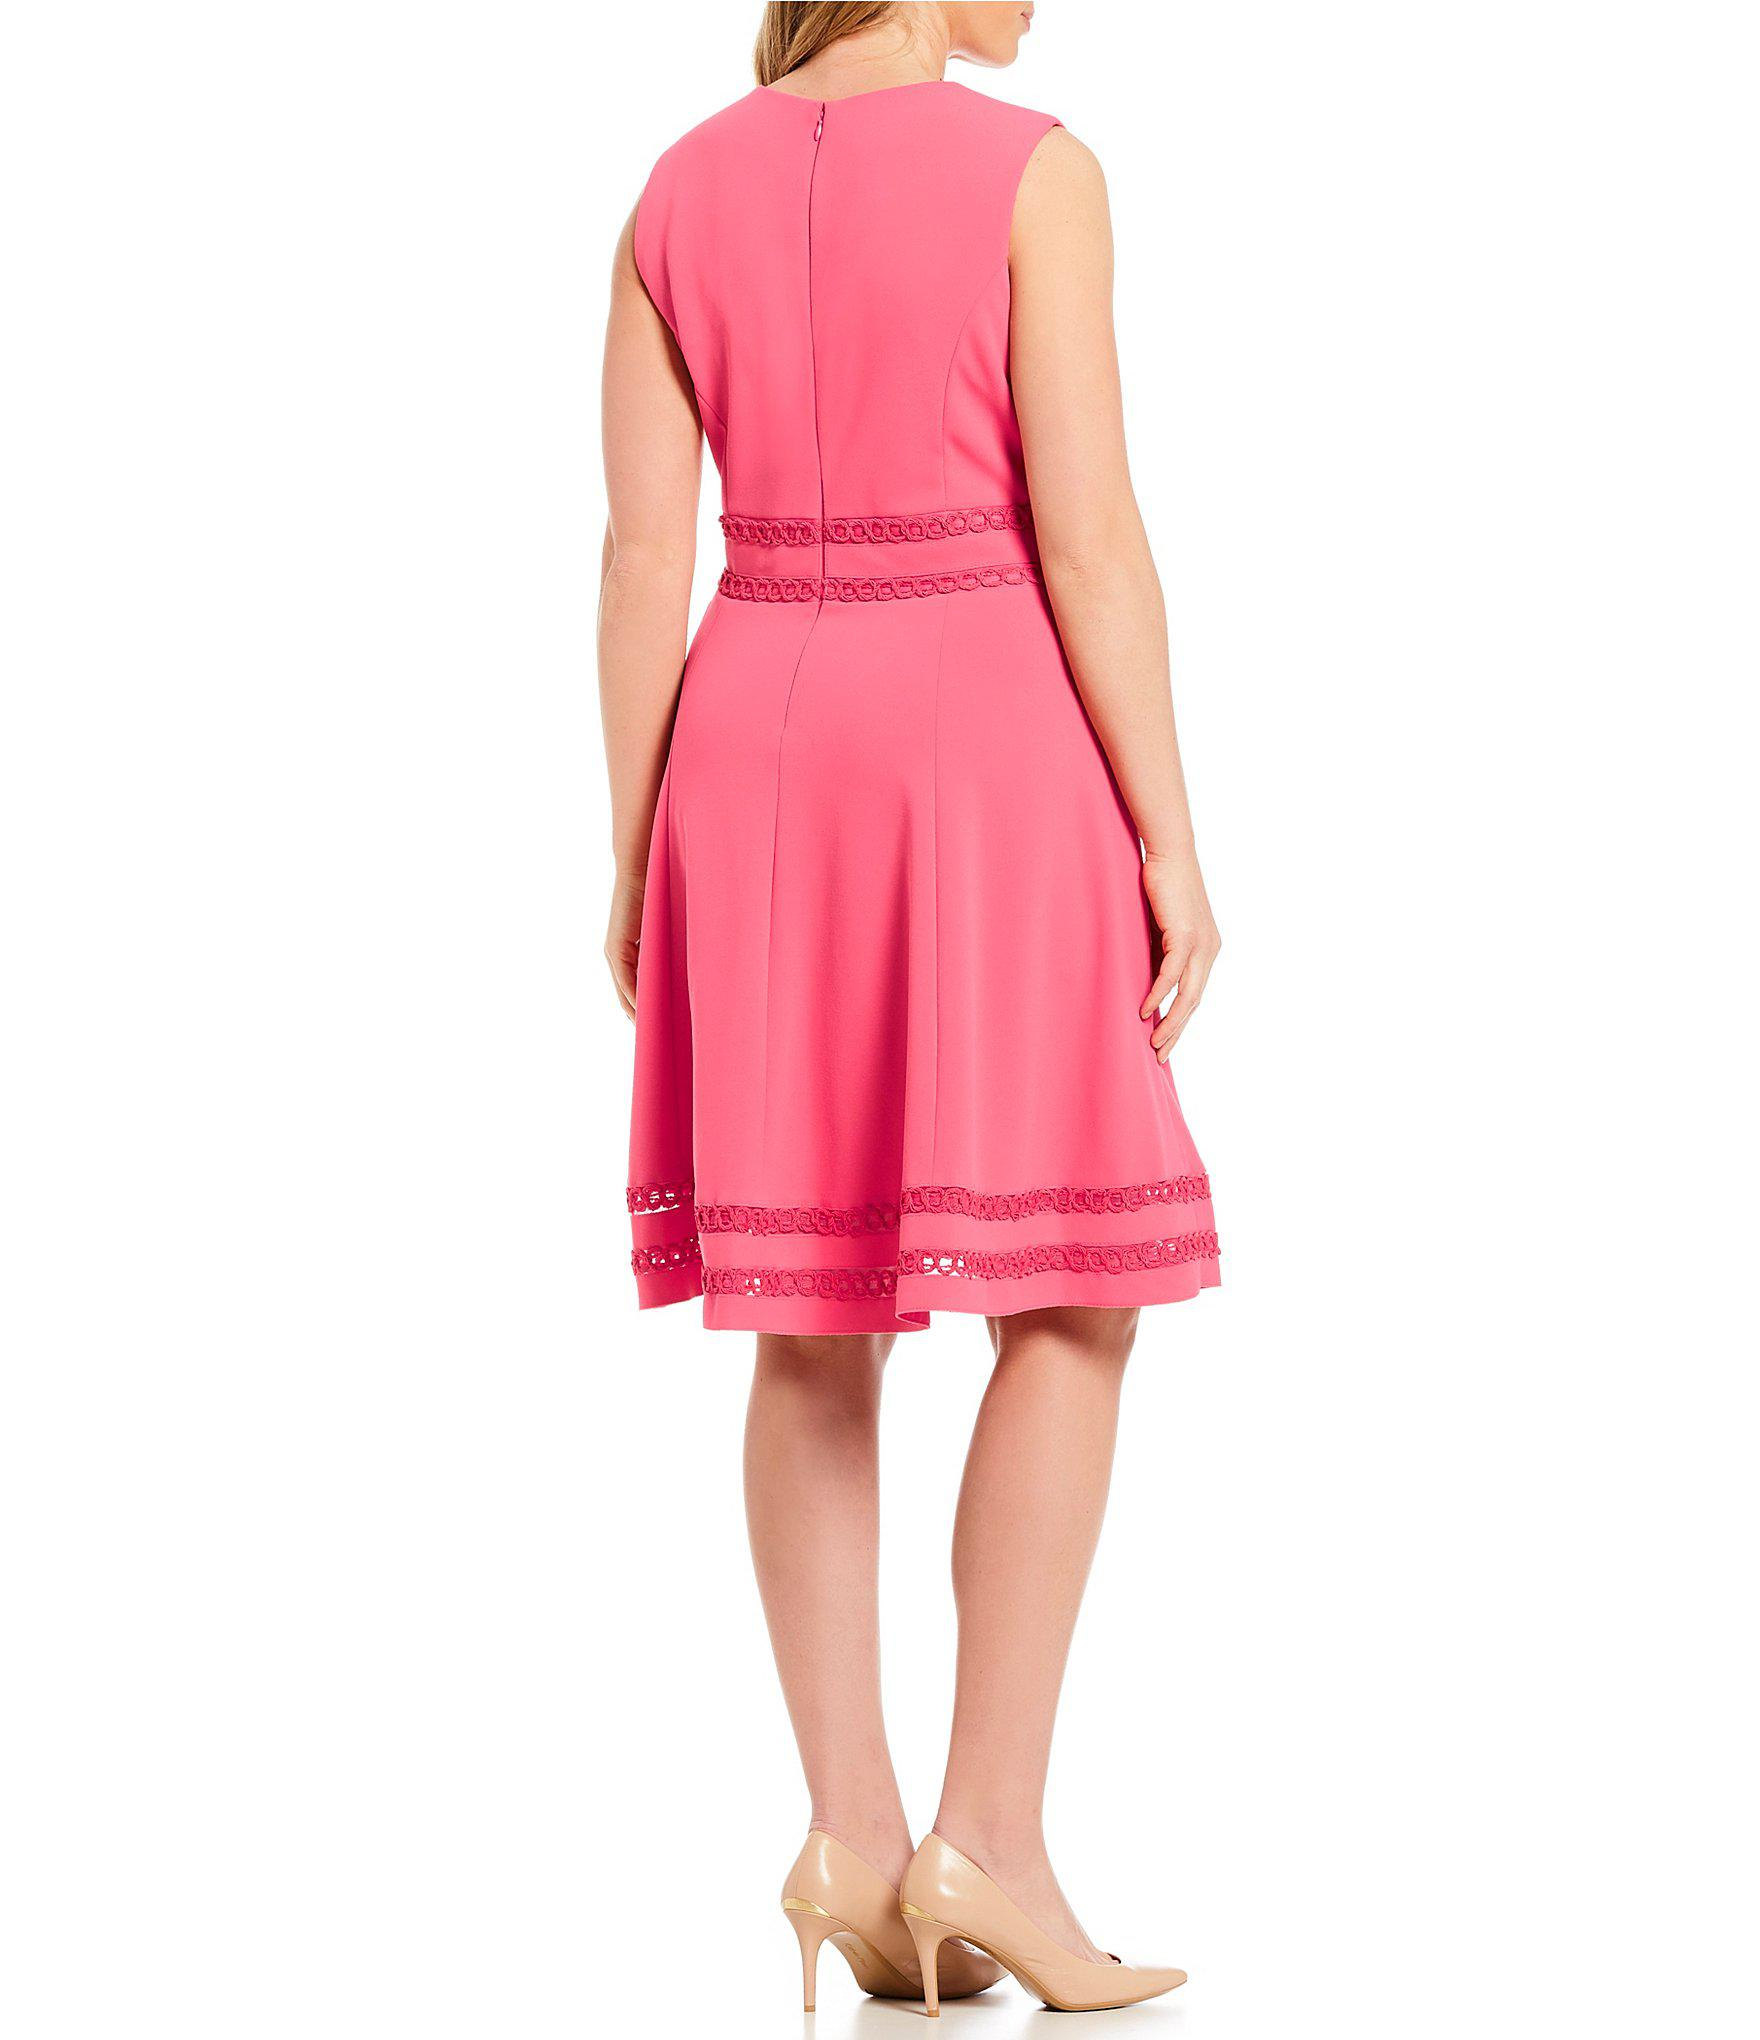 0ee2b924893 Calvin Klein Plus Size Lace Trim A-line Dress in Pink - Lyst